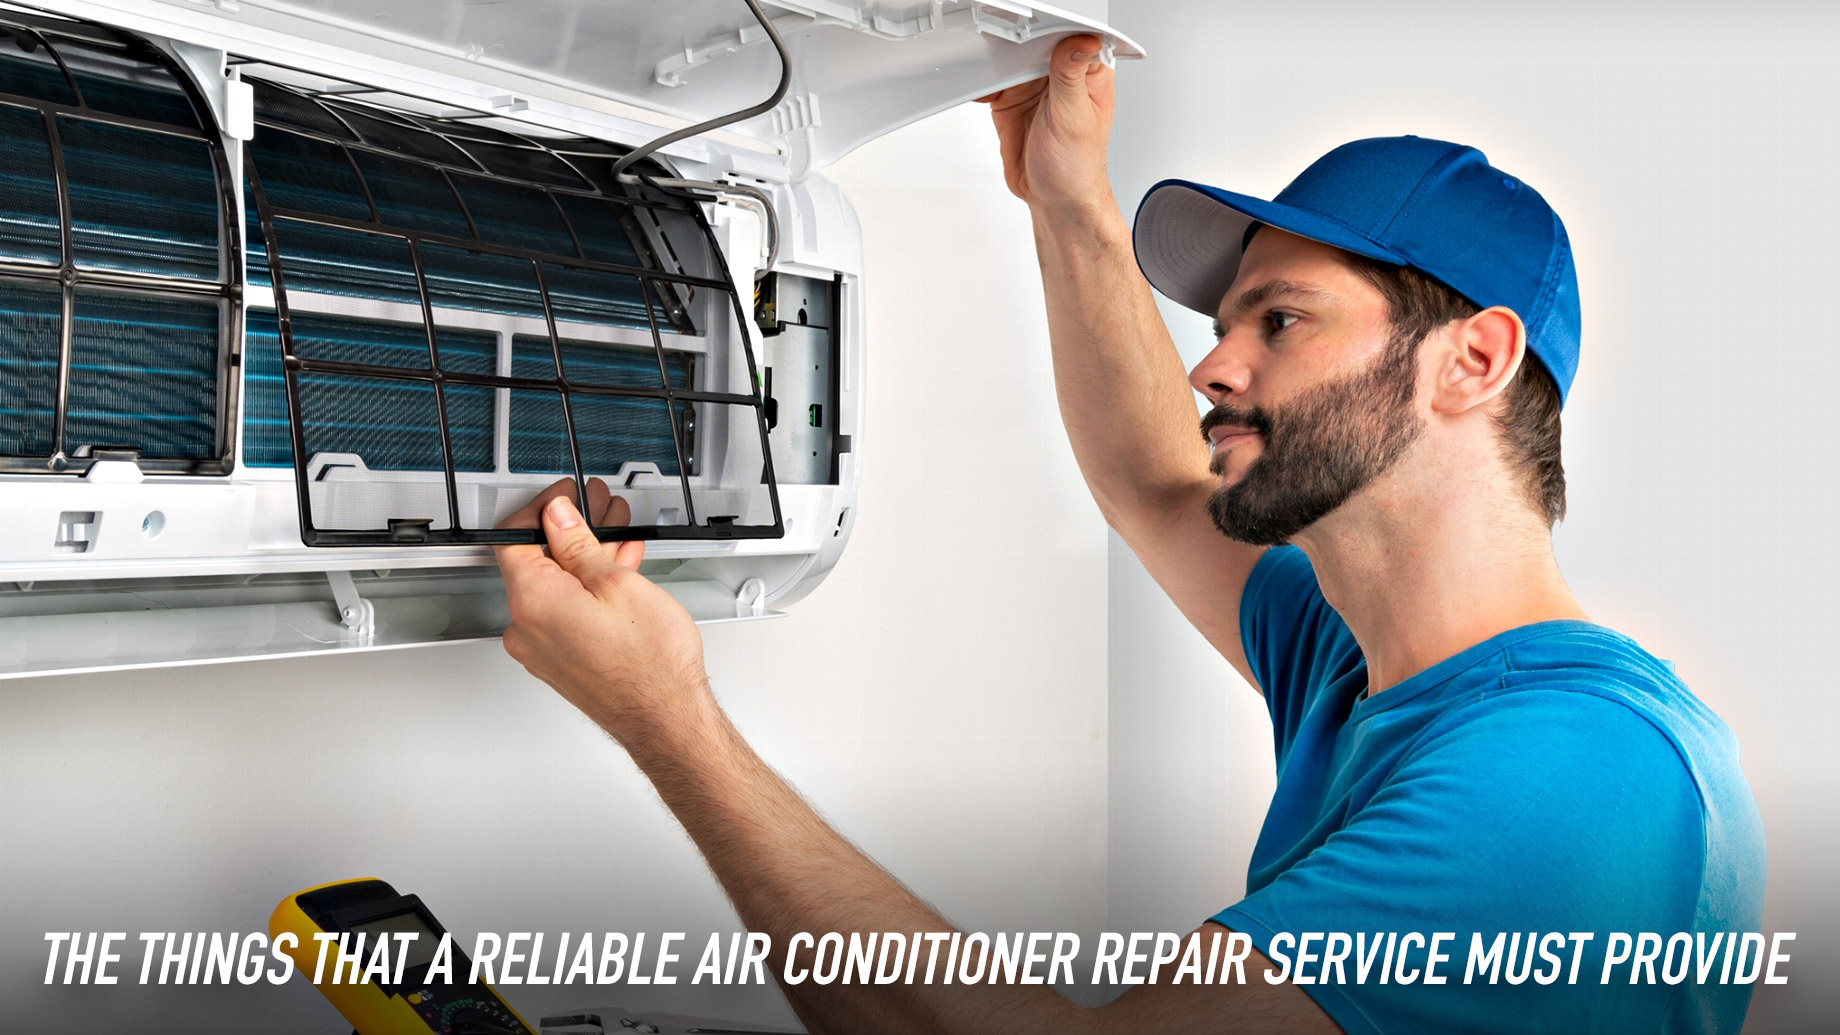 The Things That a Reliable Air Conditioner Repair Service Must Provide